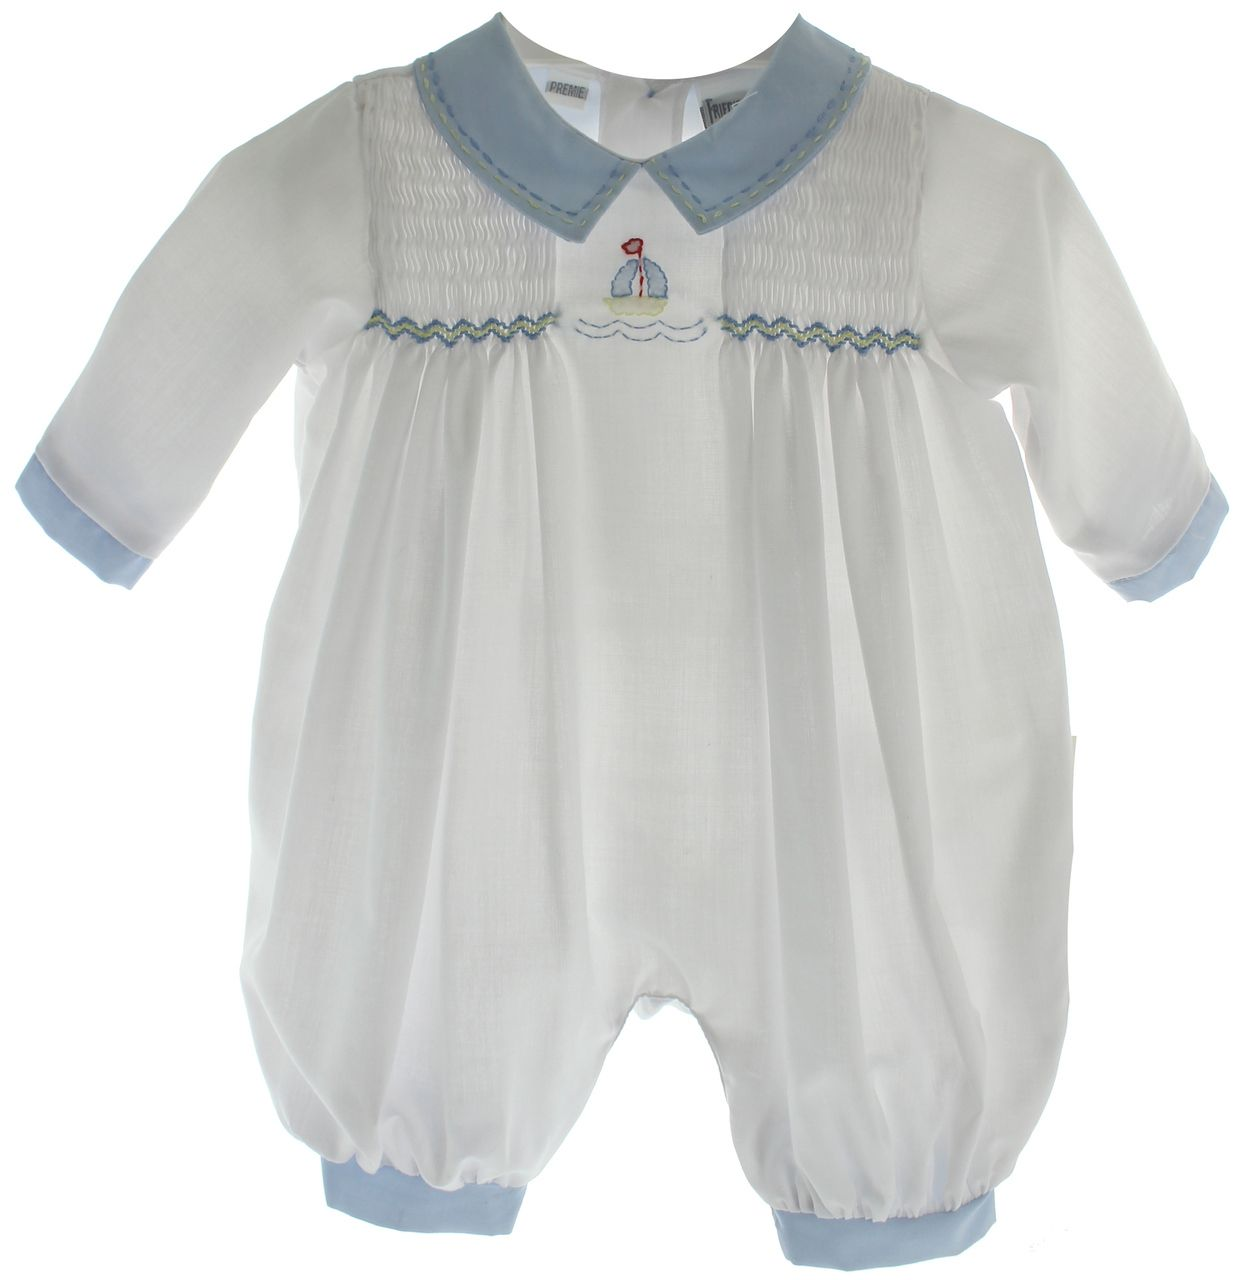 764567f32723 Hiccups Childrens Boutique - Preemie Boys White Sailboat Romper Outfit |  Friedknit by Feltman, $32.00